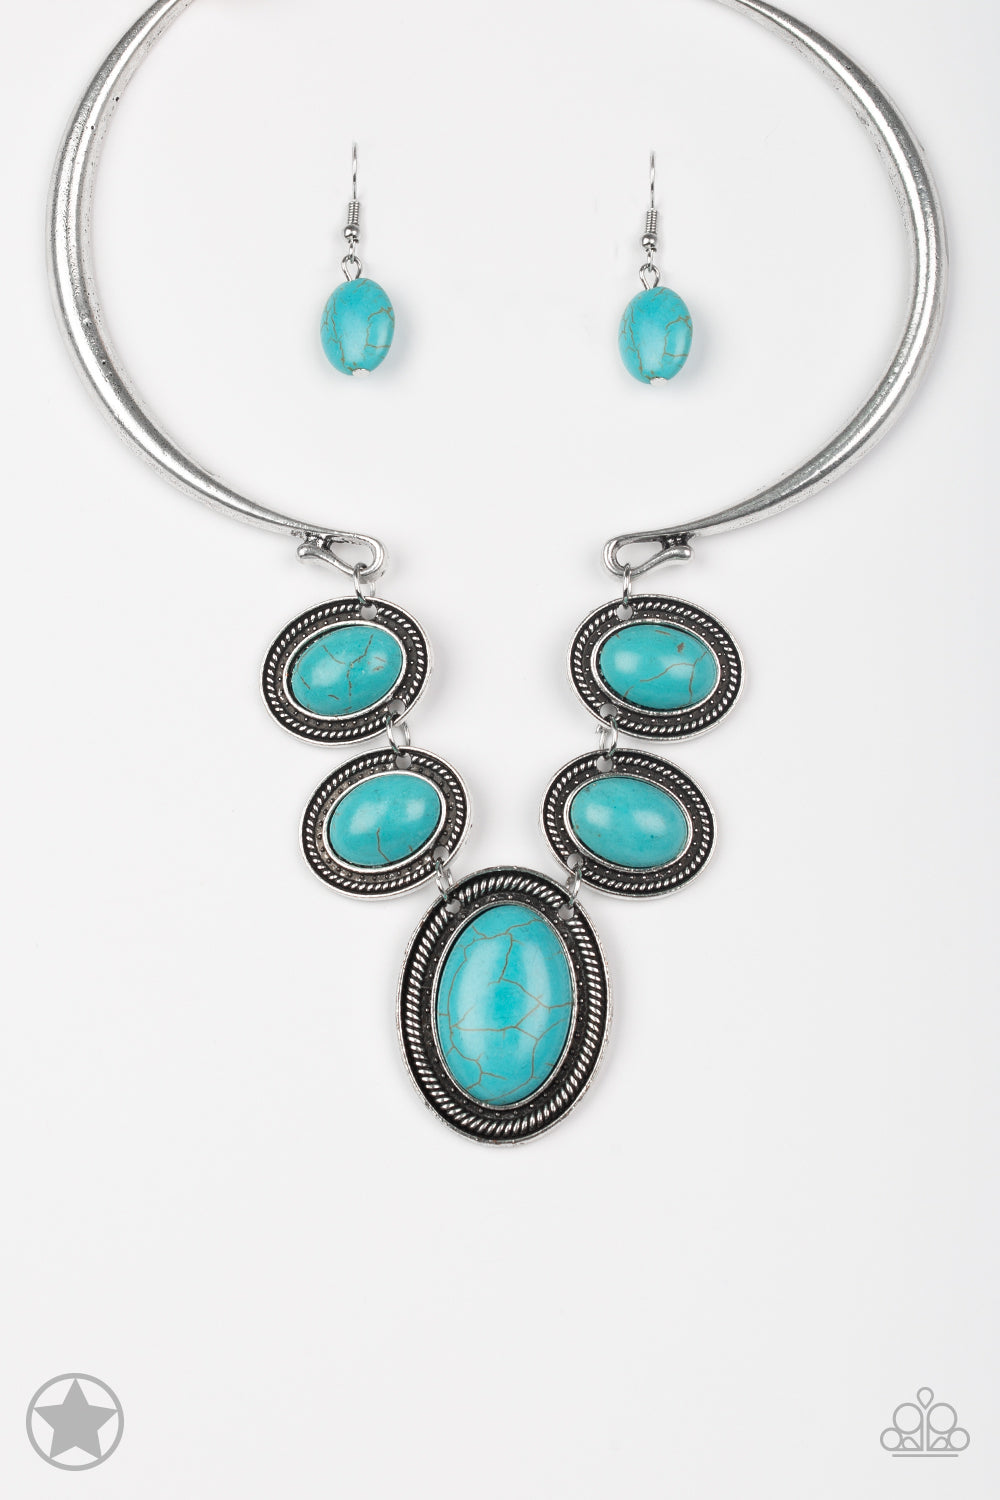 River Ride - Blue Turquoise Necklace